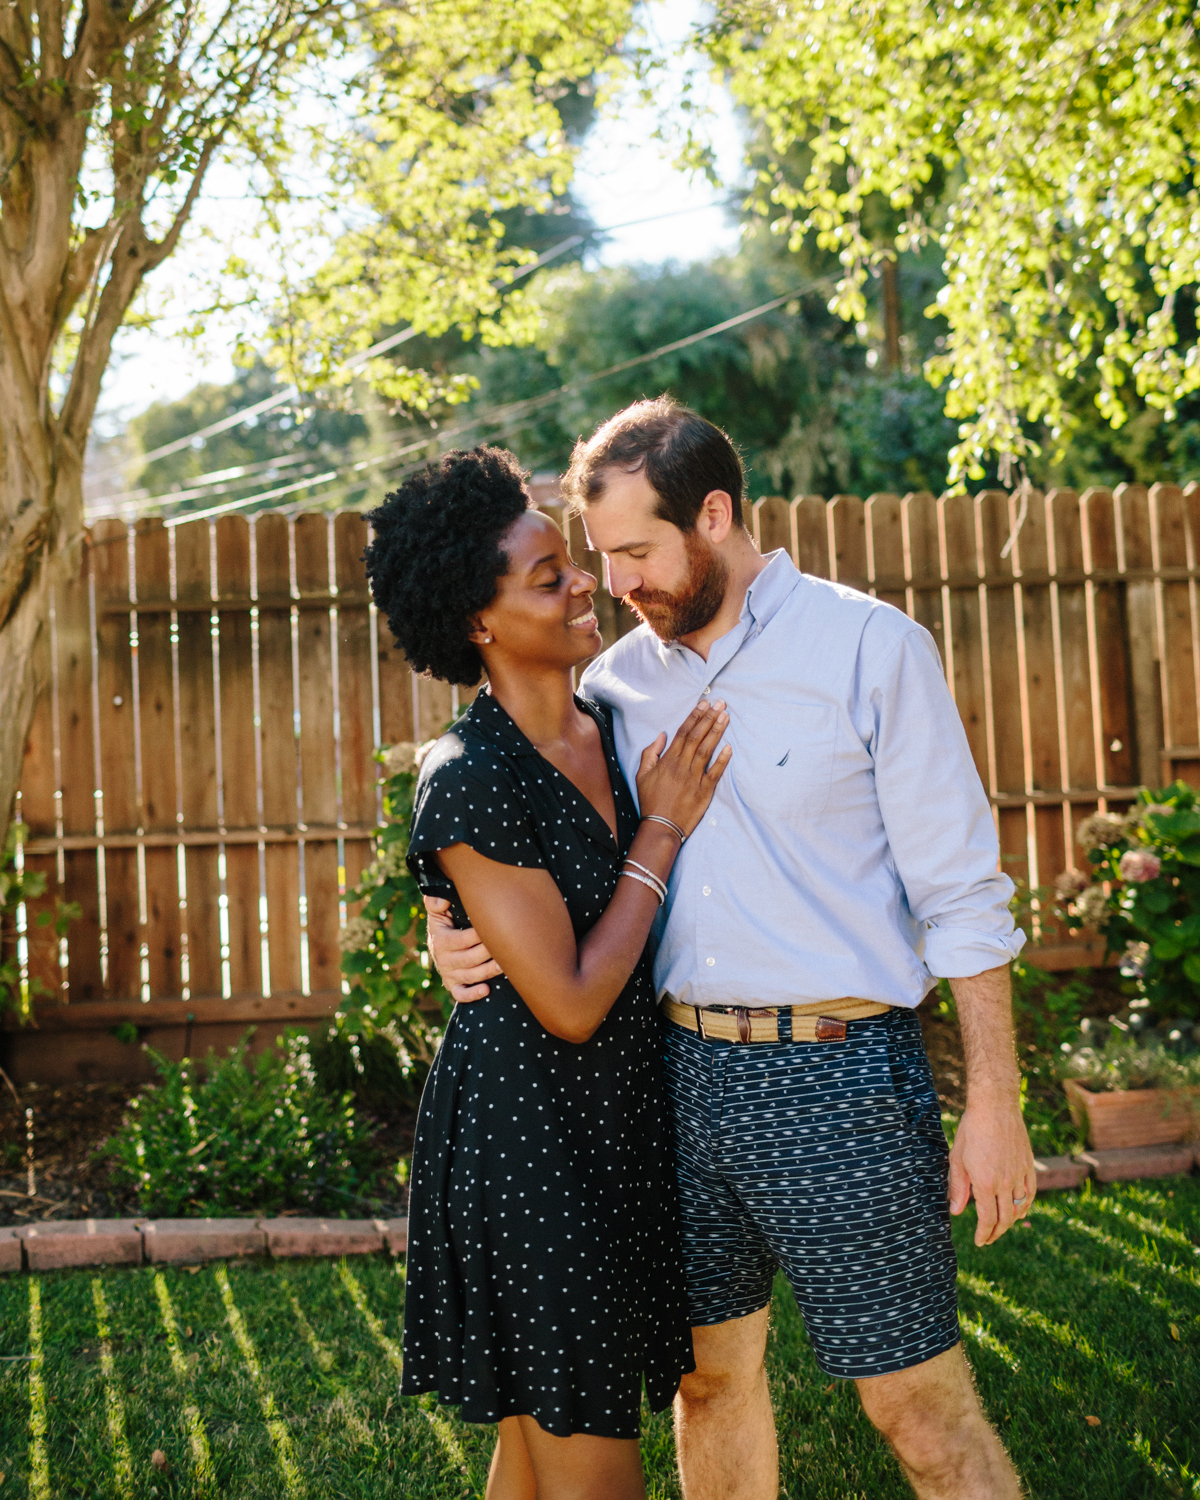 sacramento couples photographer natural light lifestyle documentary